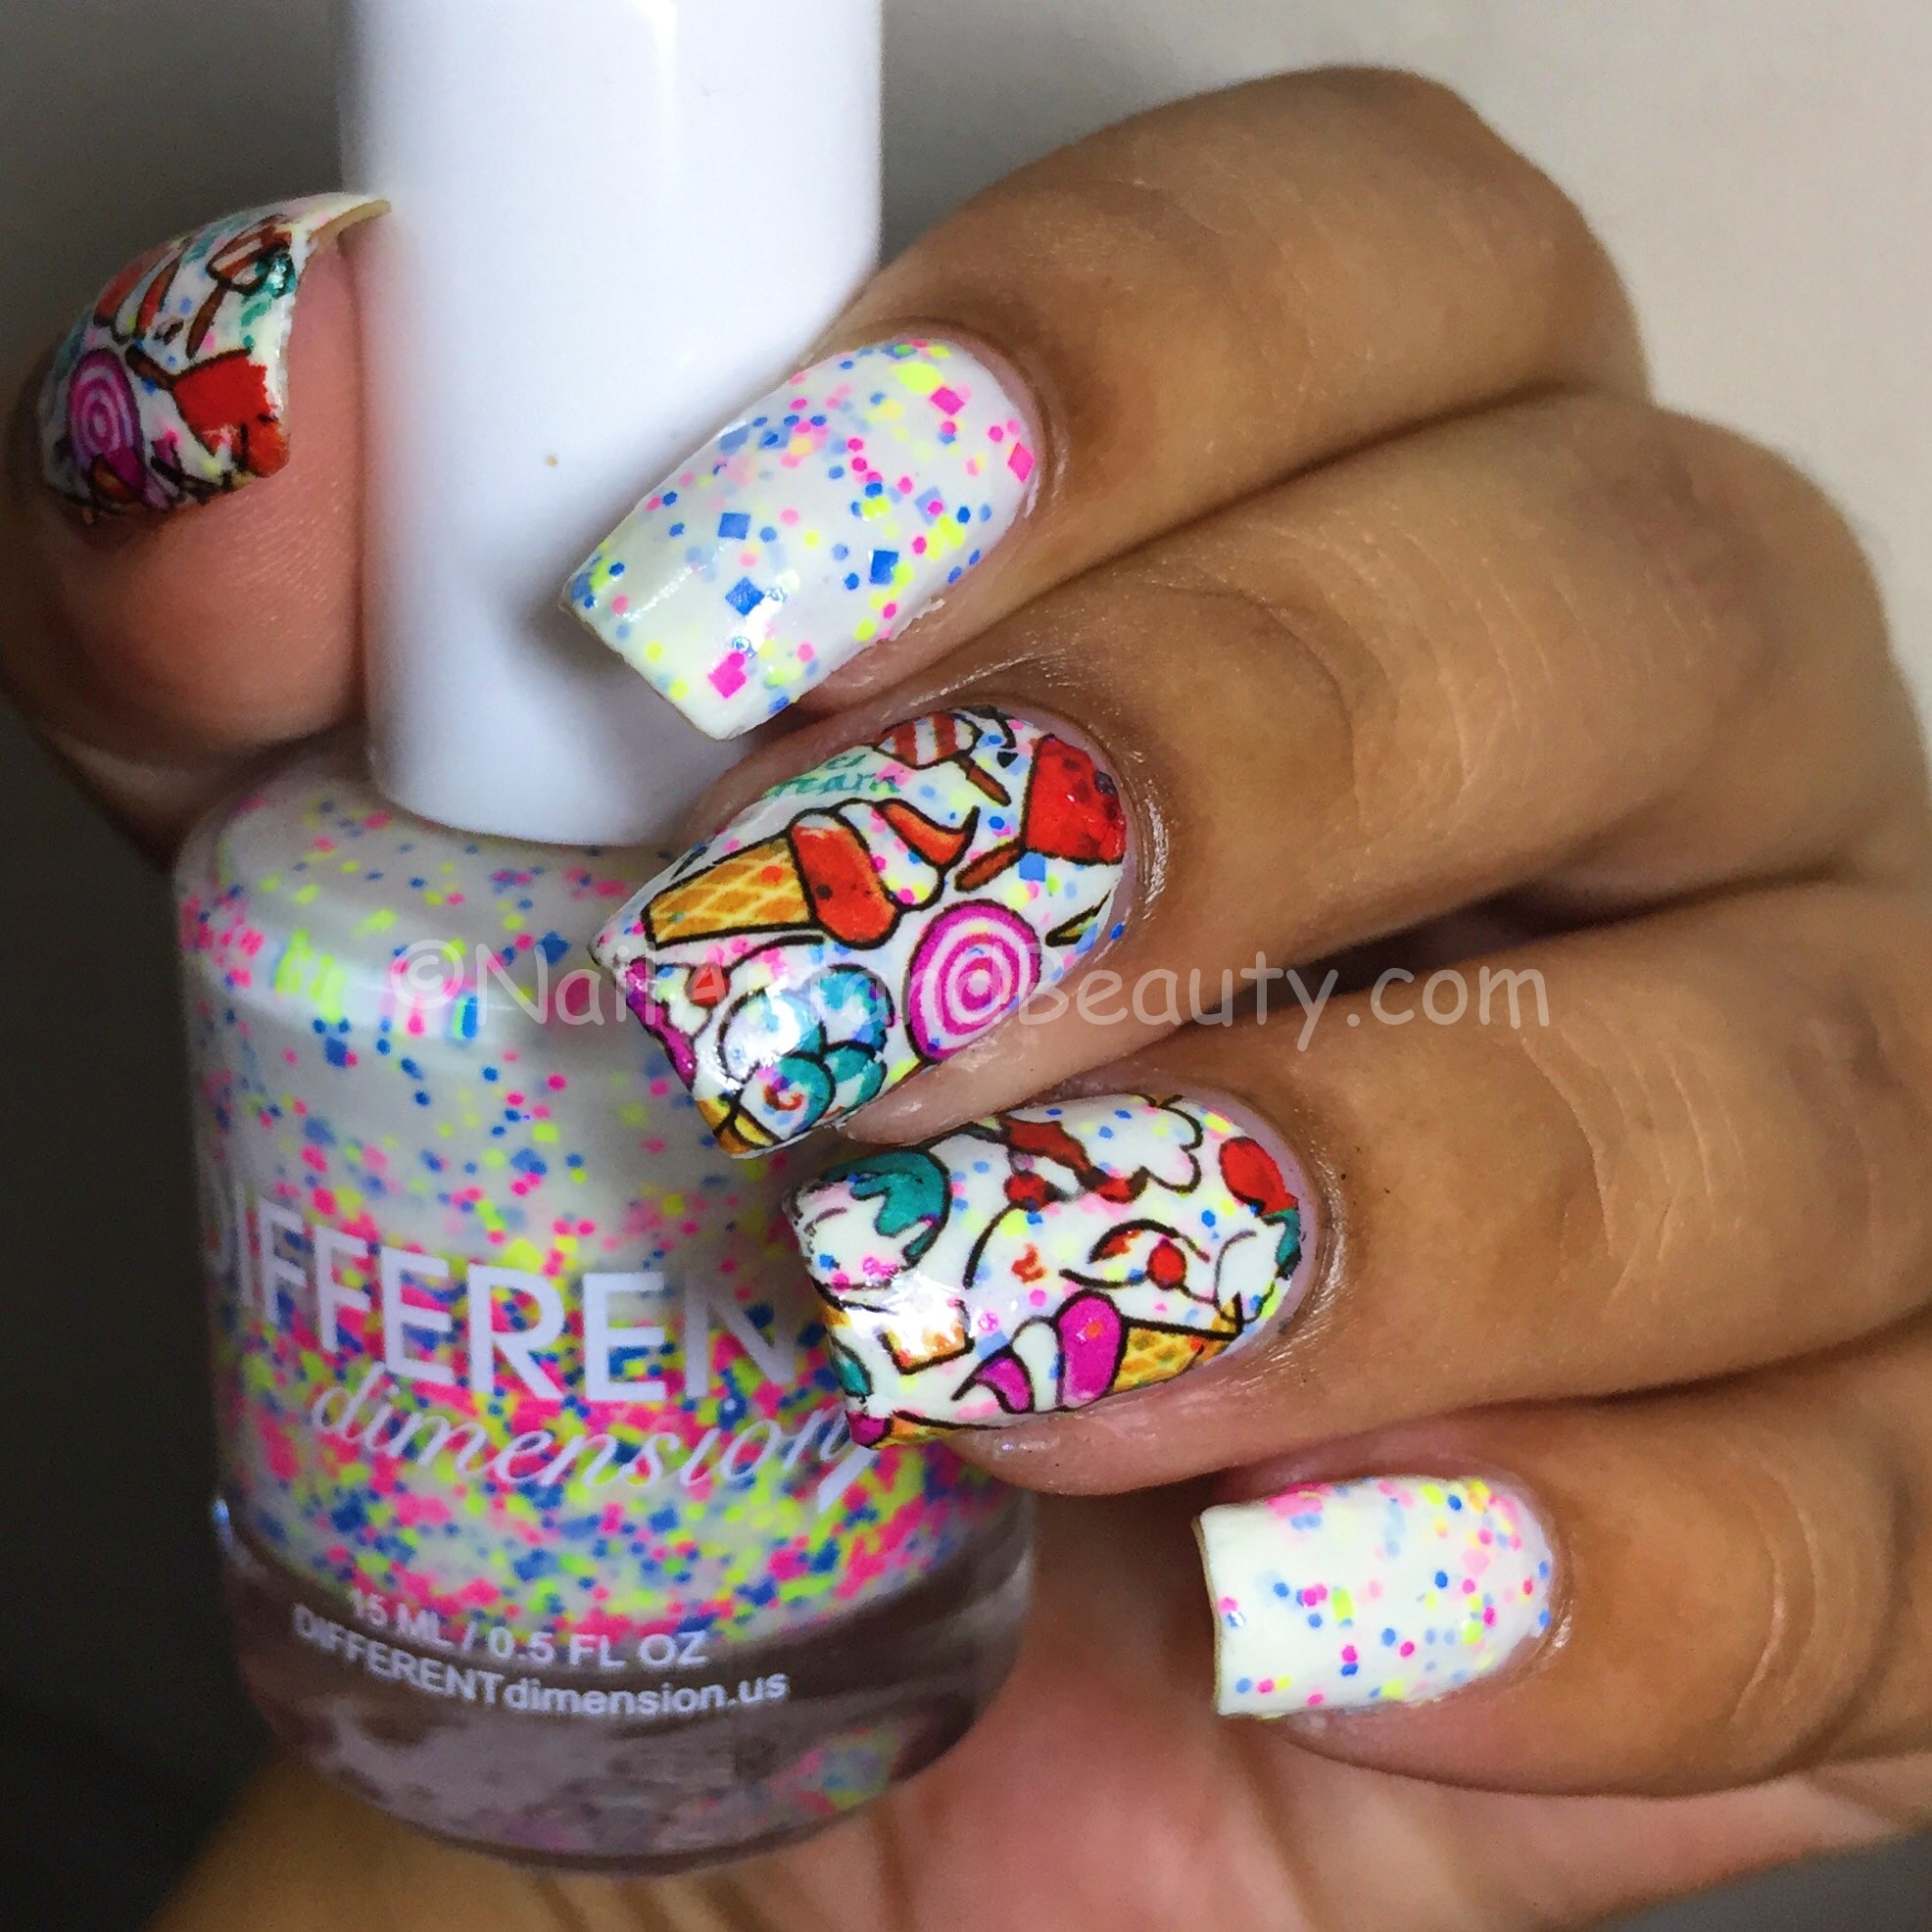 icecream-nails-on-different-dimensions-surfs-up